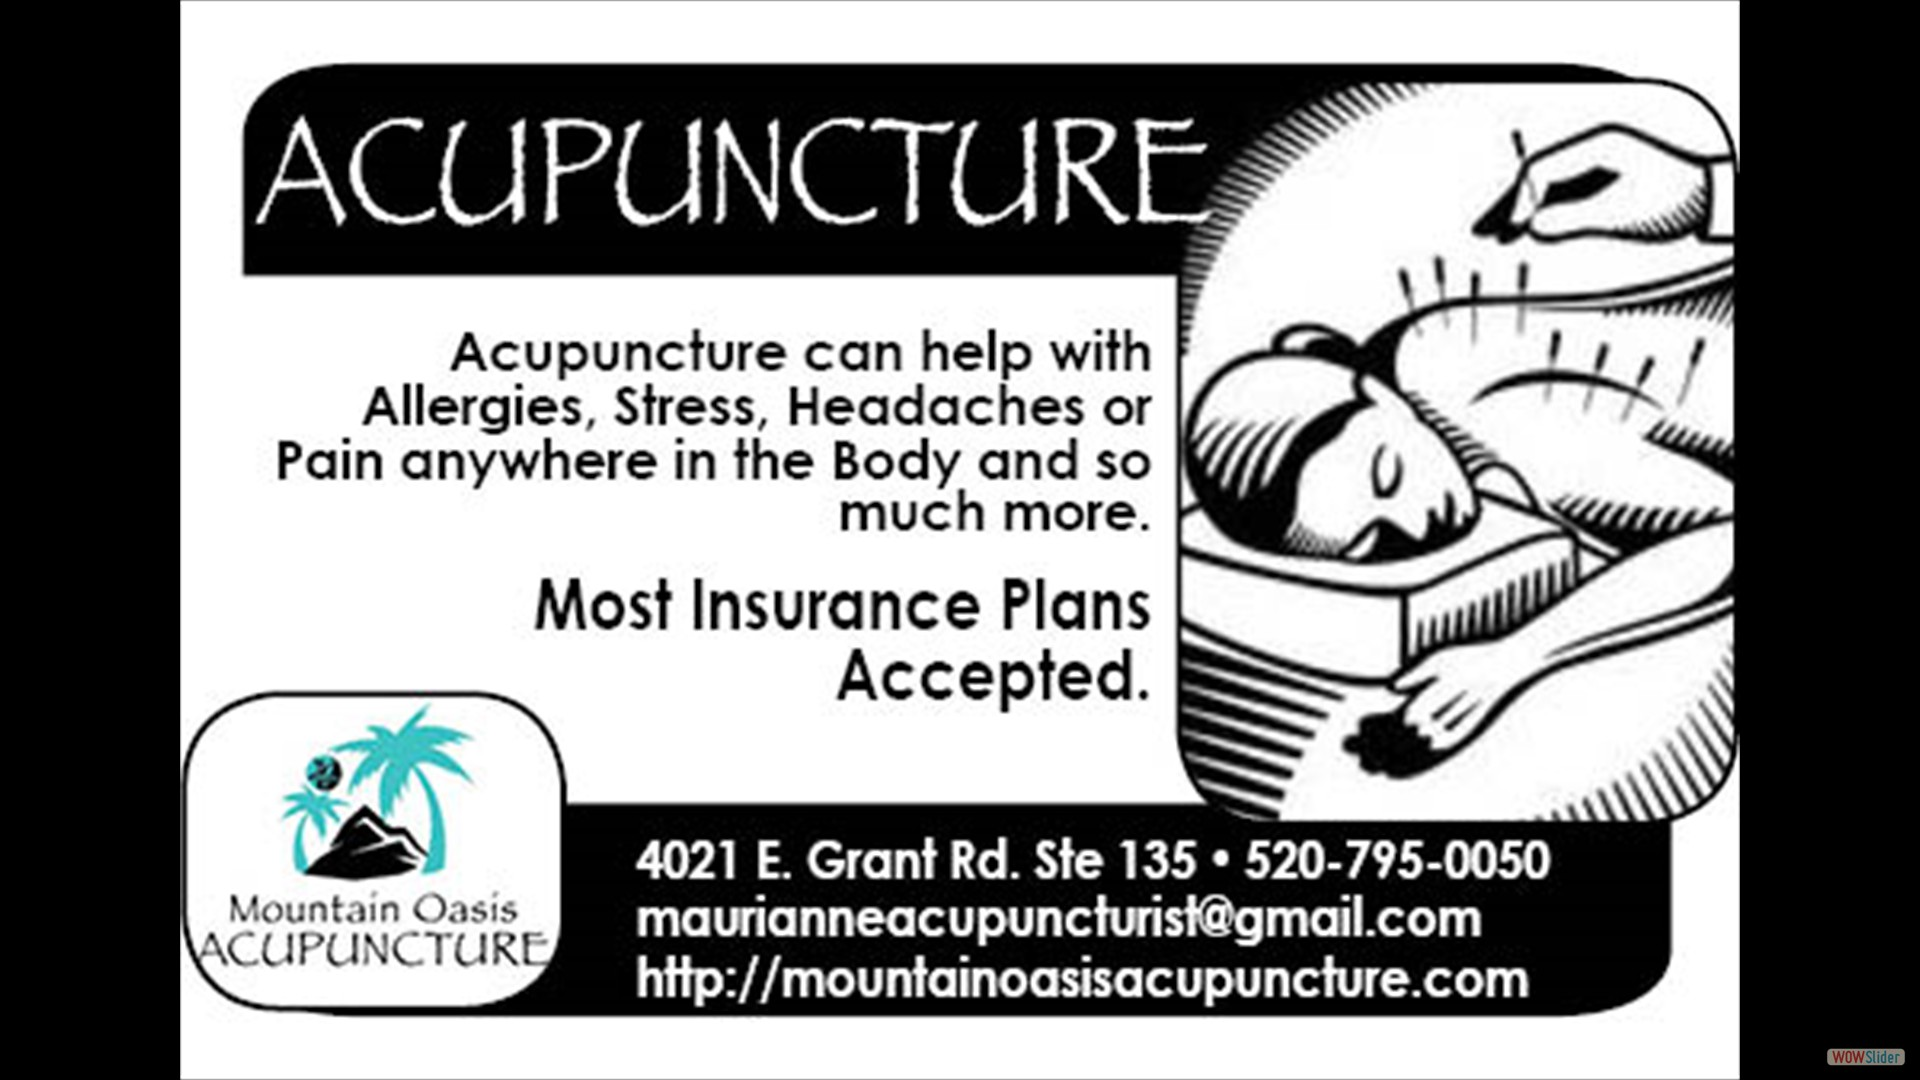 Mountain Oasis Accupuncture borderless (1)